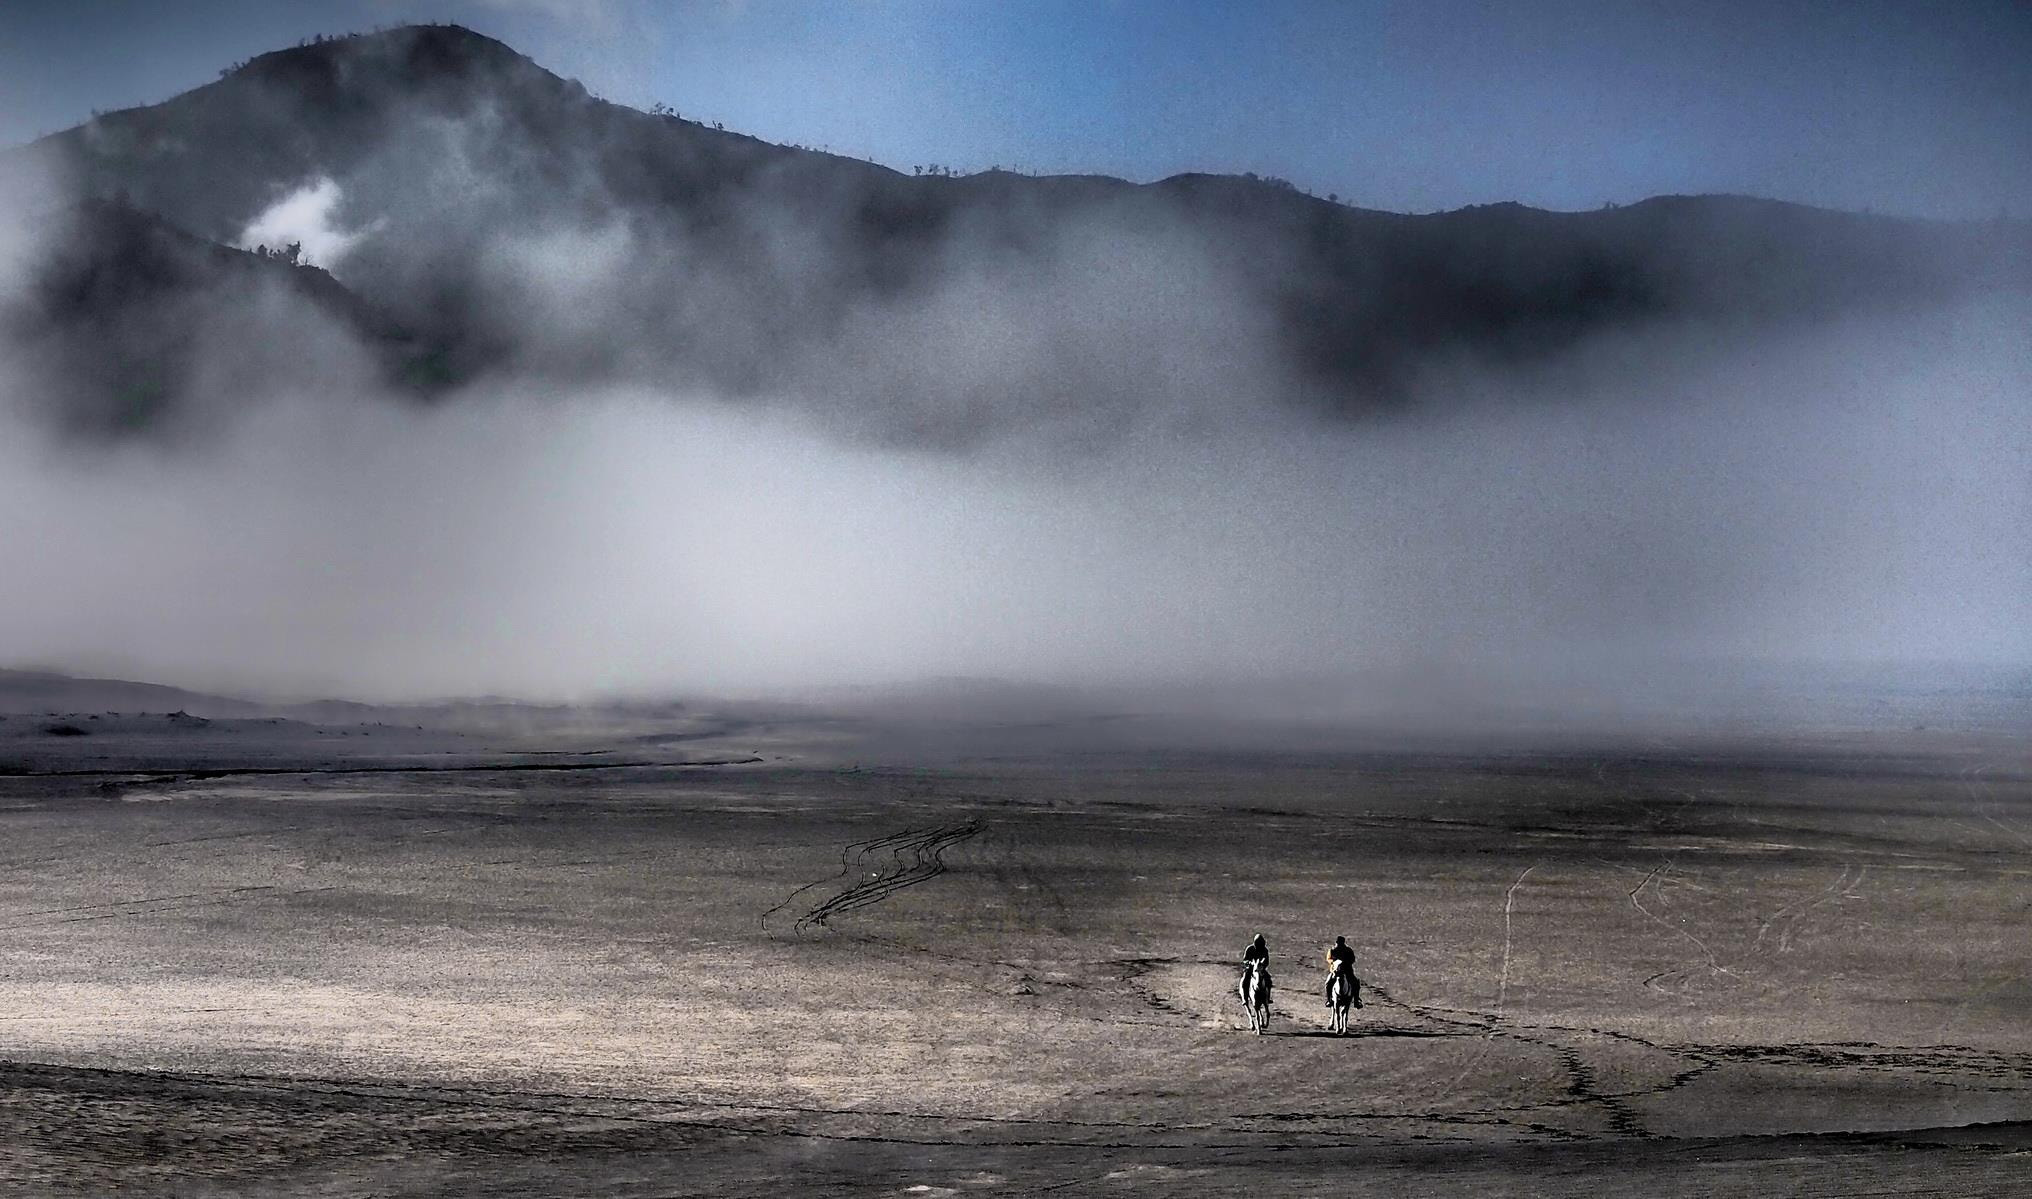 Photograph horse riders@Bromo by Mia Besari on 500px